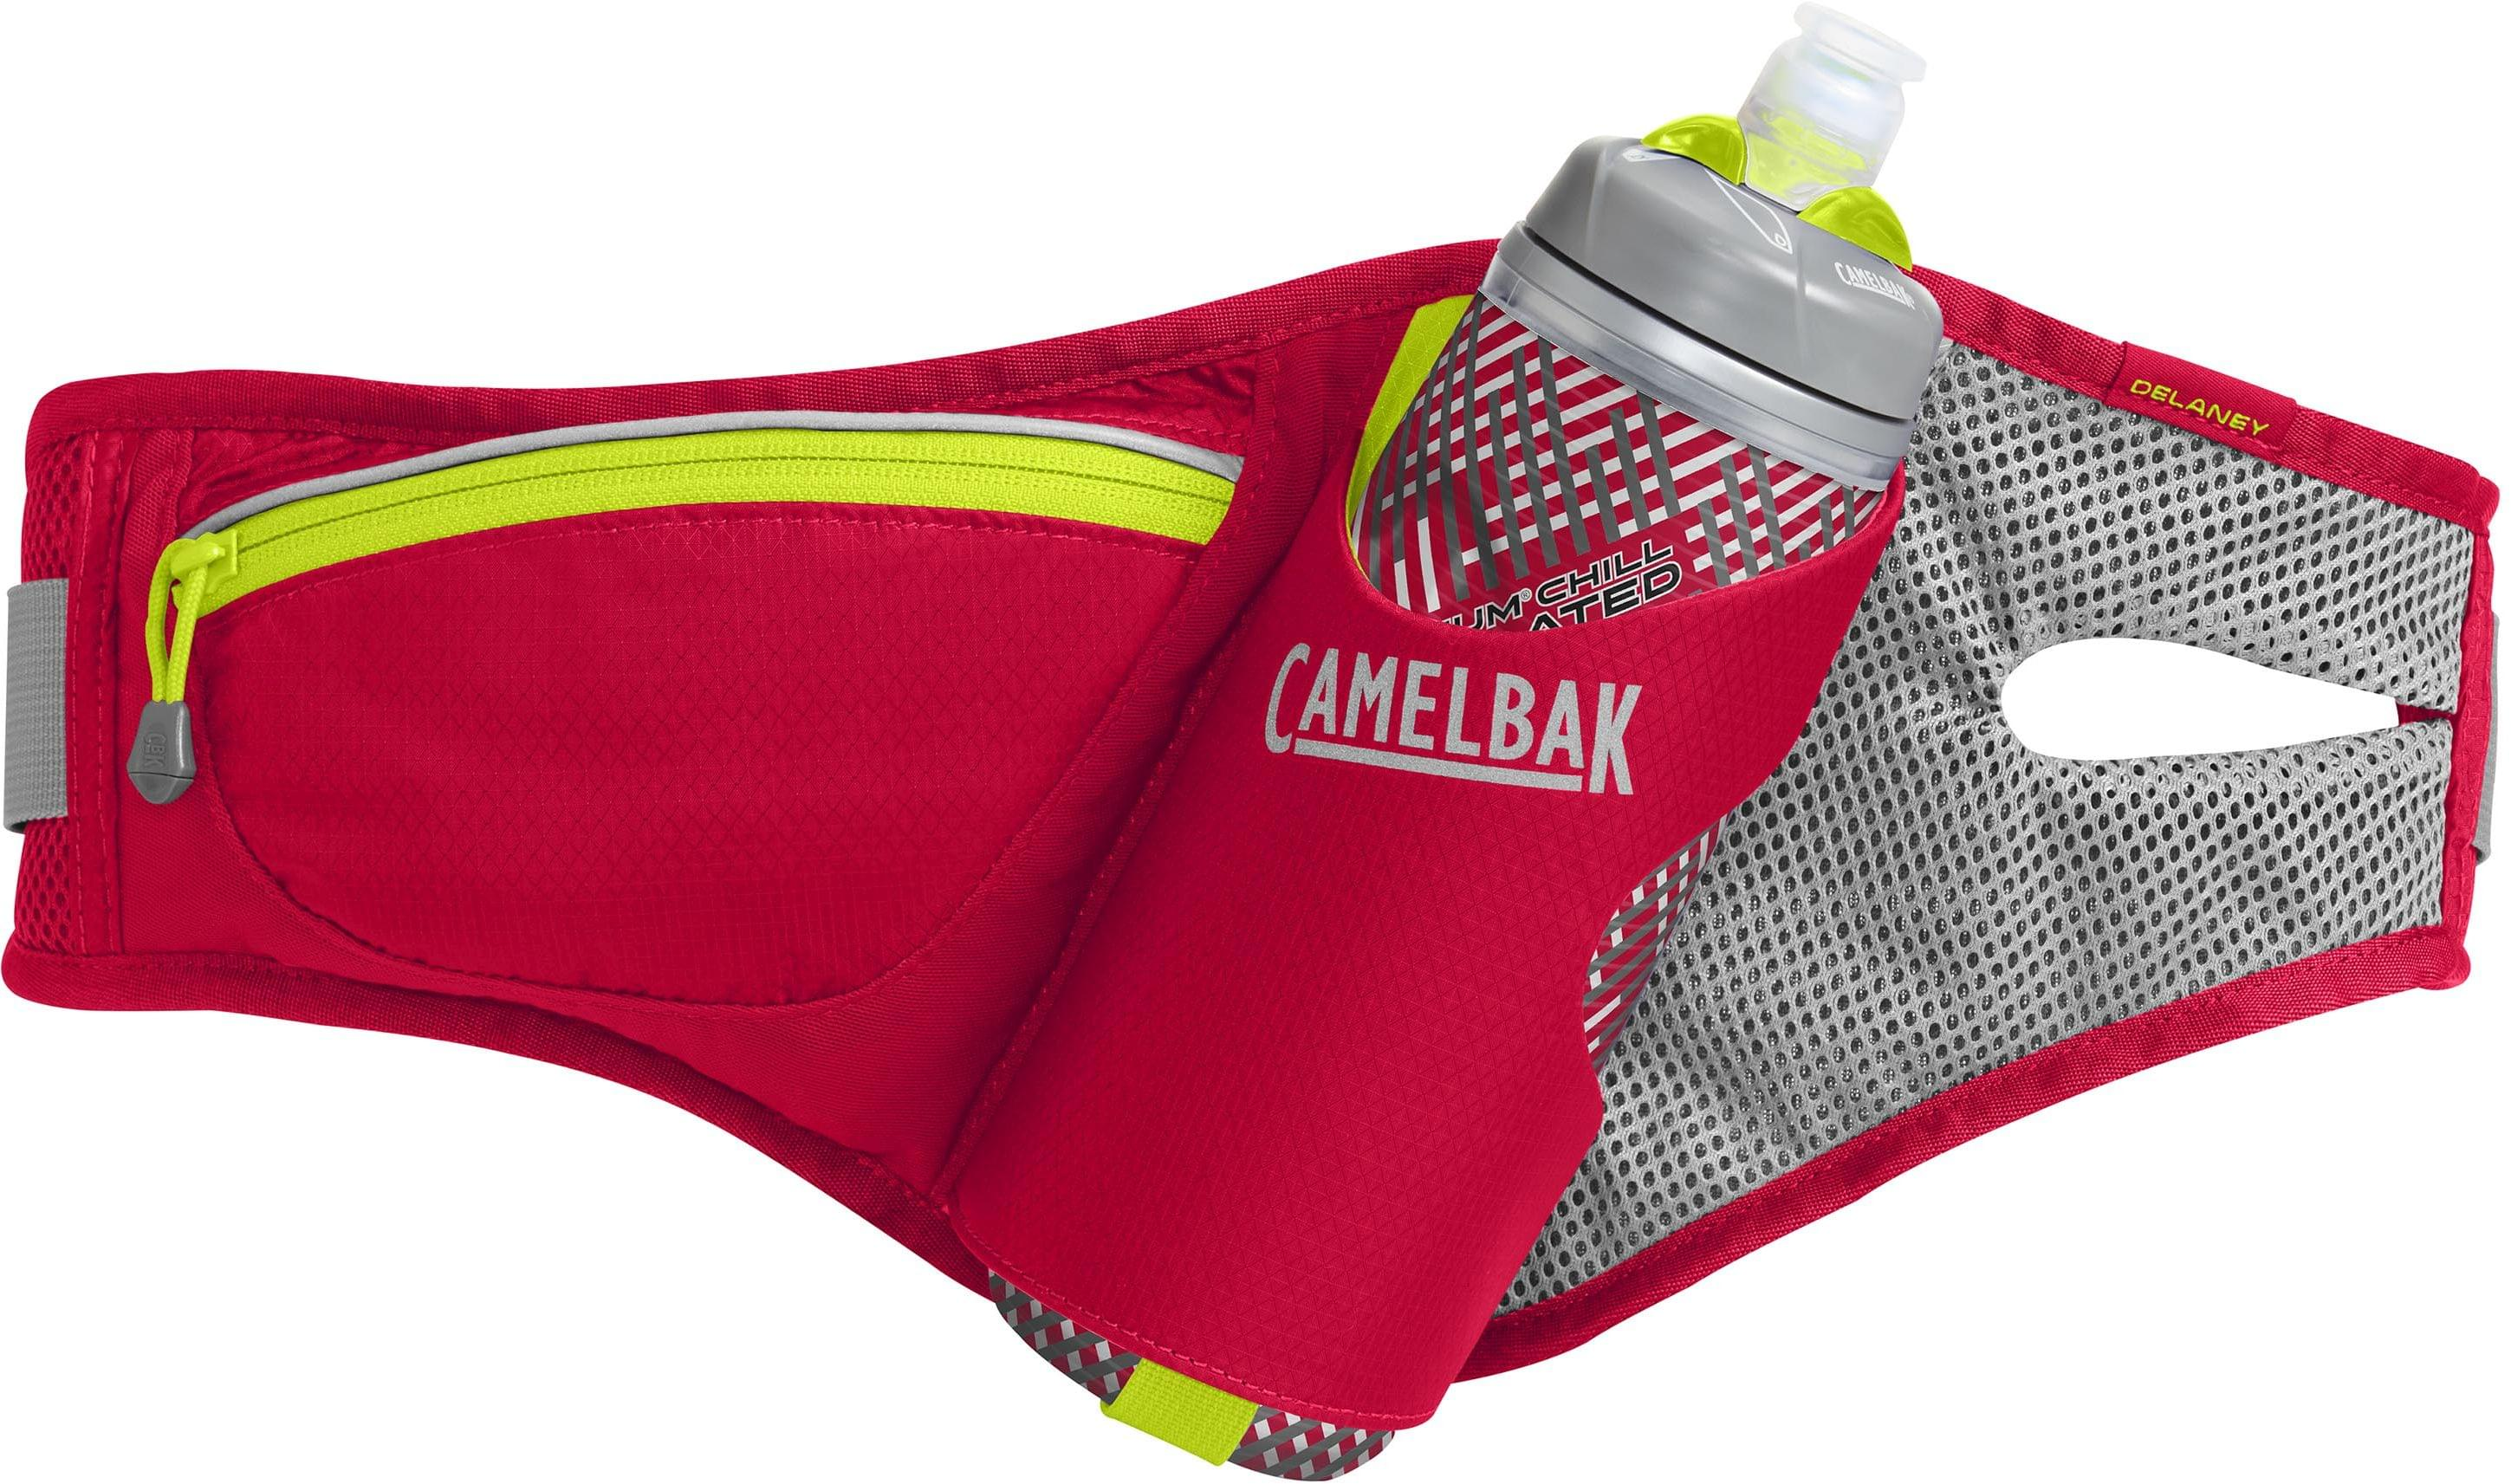 Camelbak Delaney - Crimson Red/Lime Punch uni